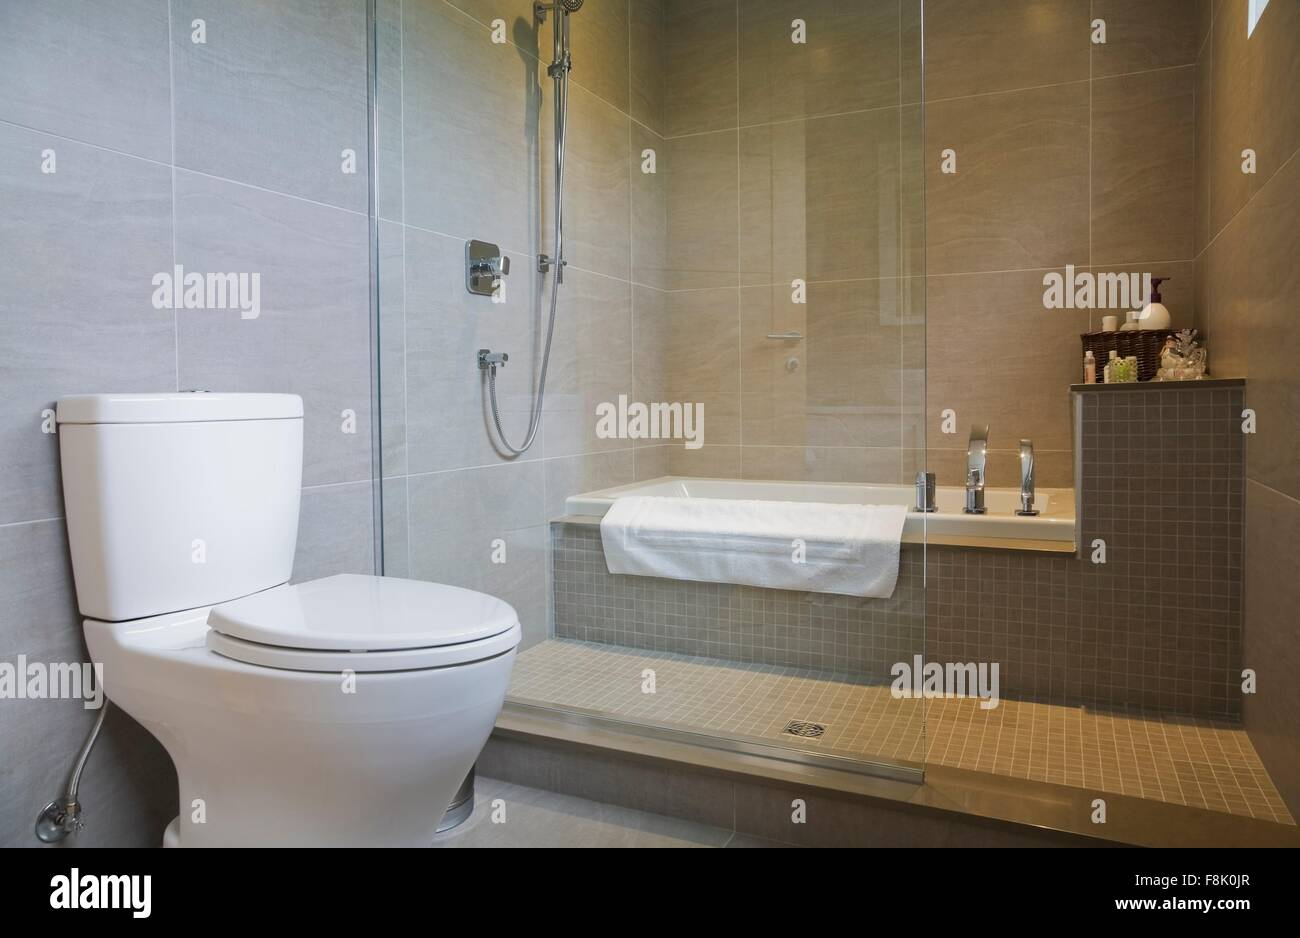 Modern Bathroom With Bath Tub, Toilet And Glass Shower Screen   Stock Image